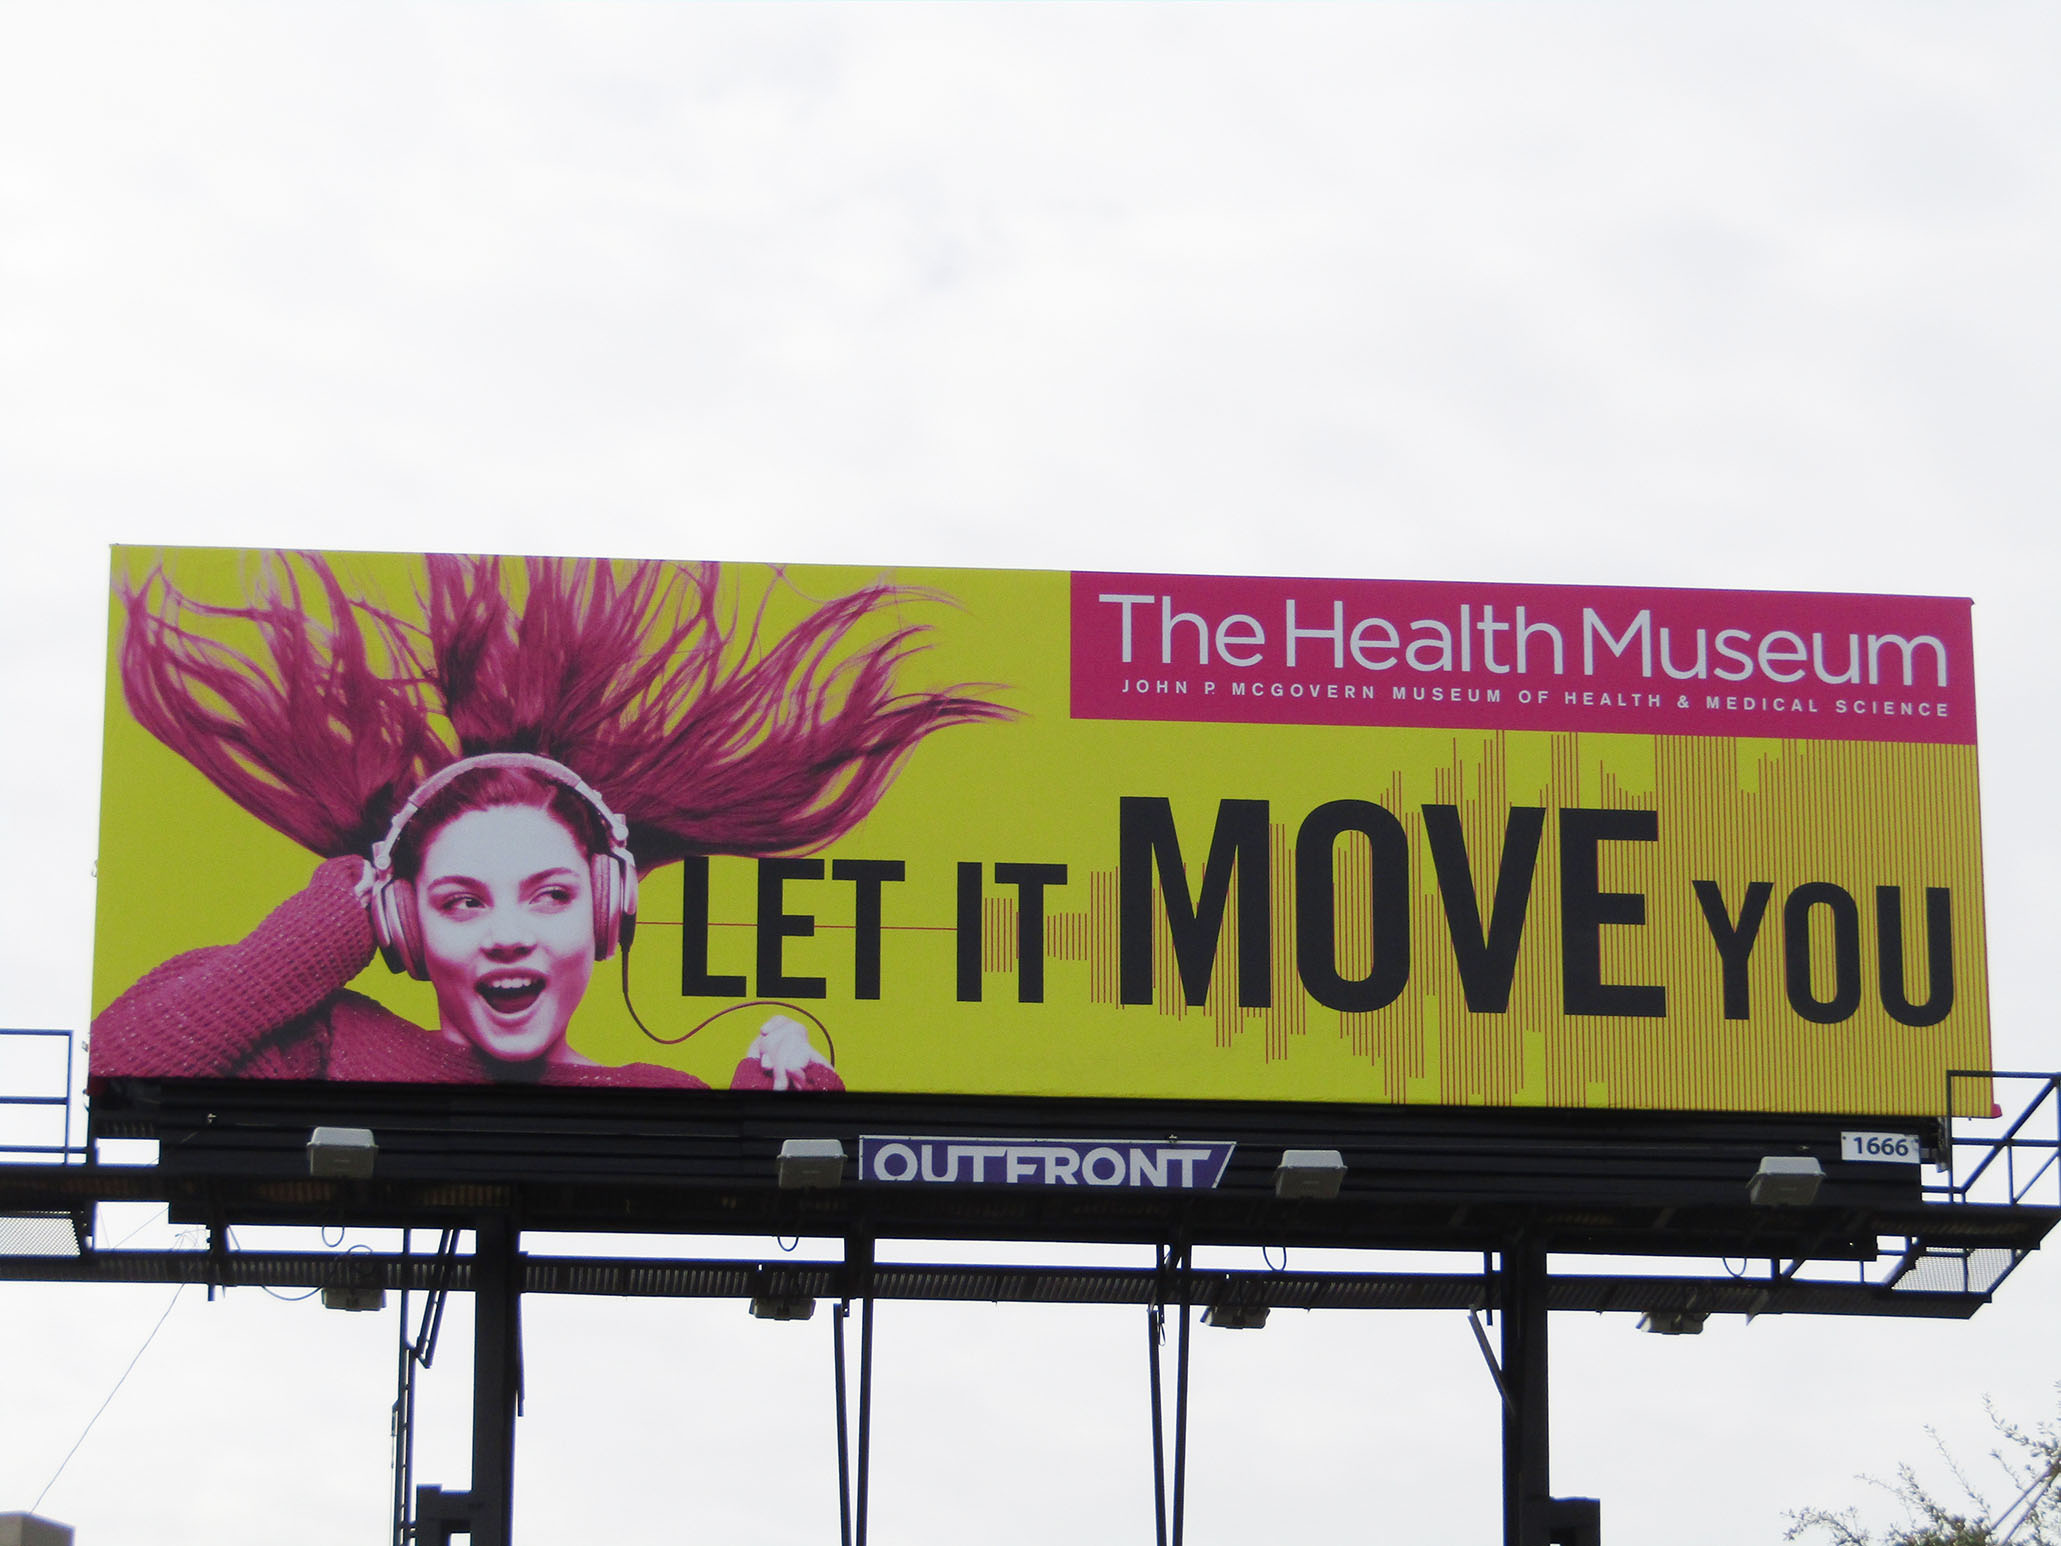 The Health Museum Billboard